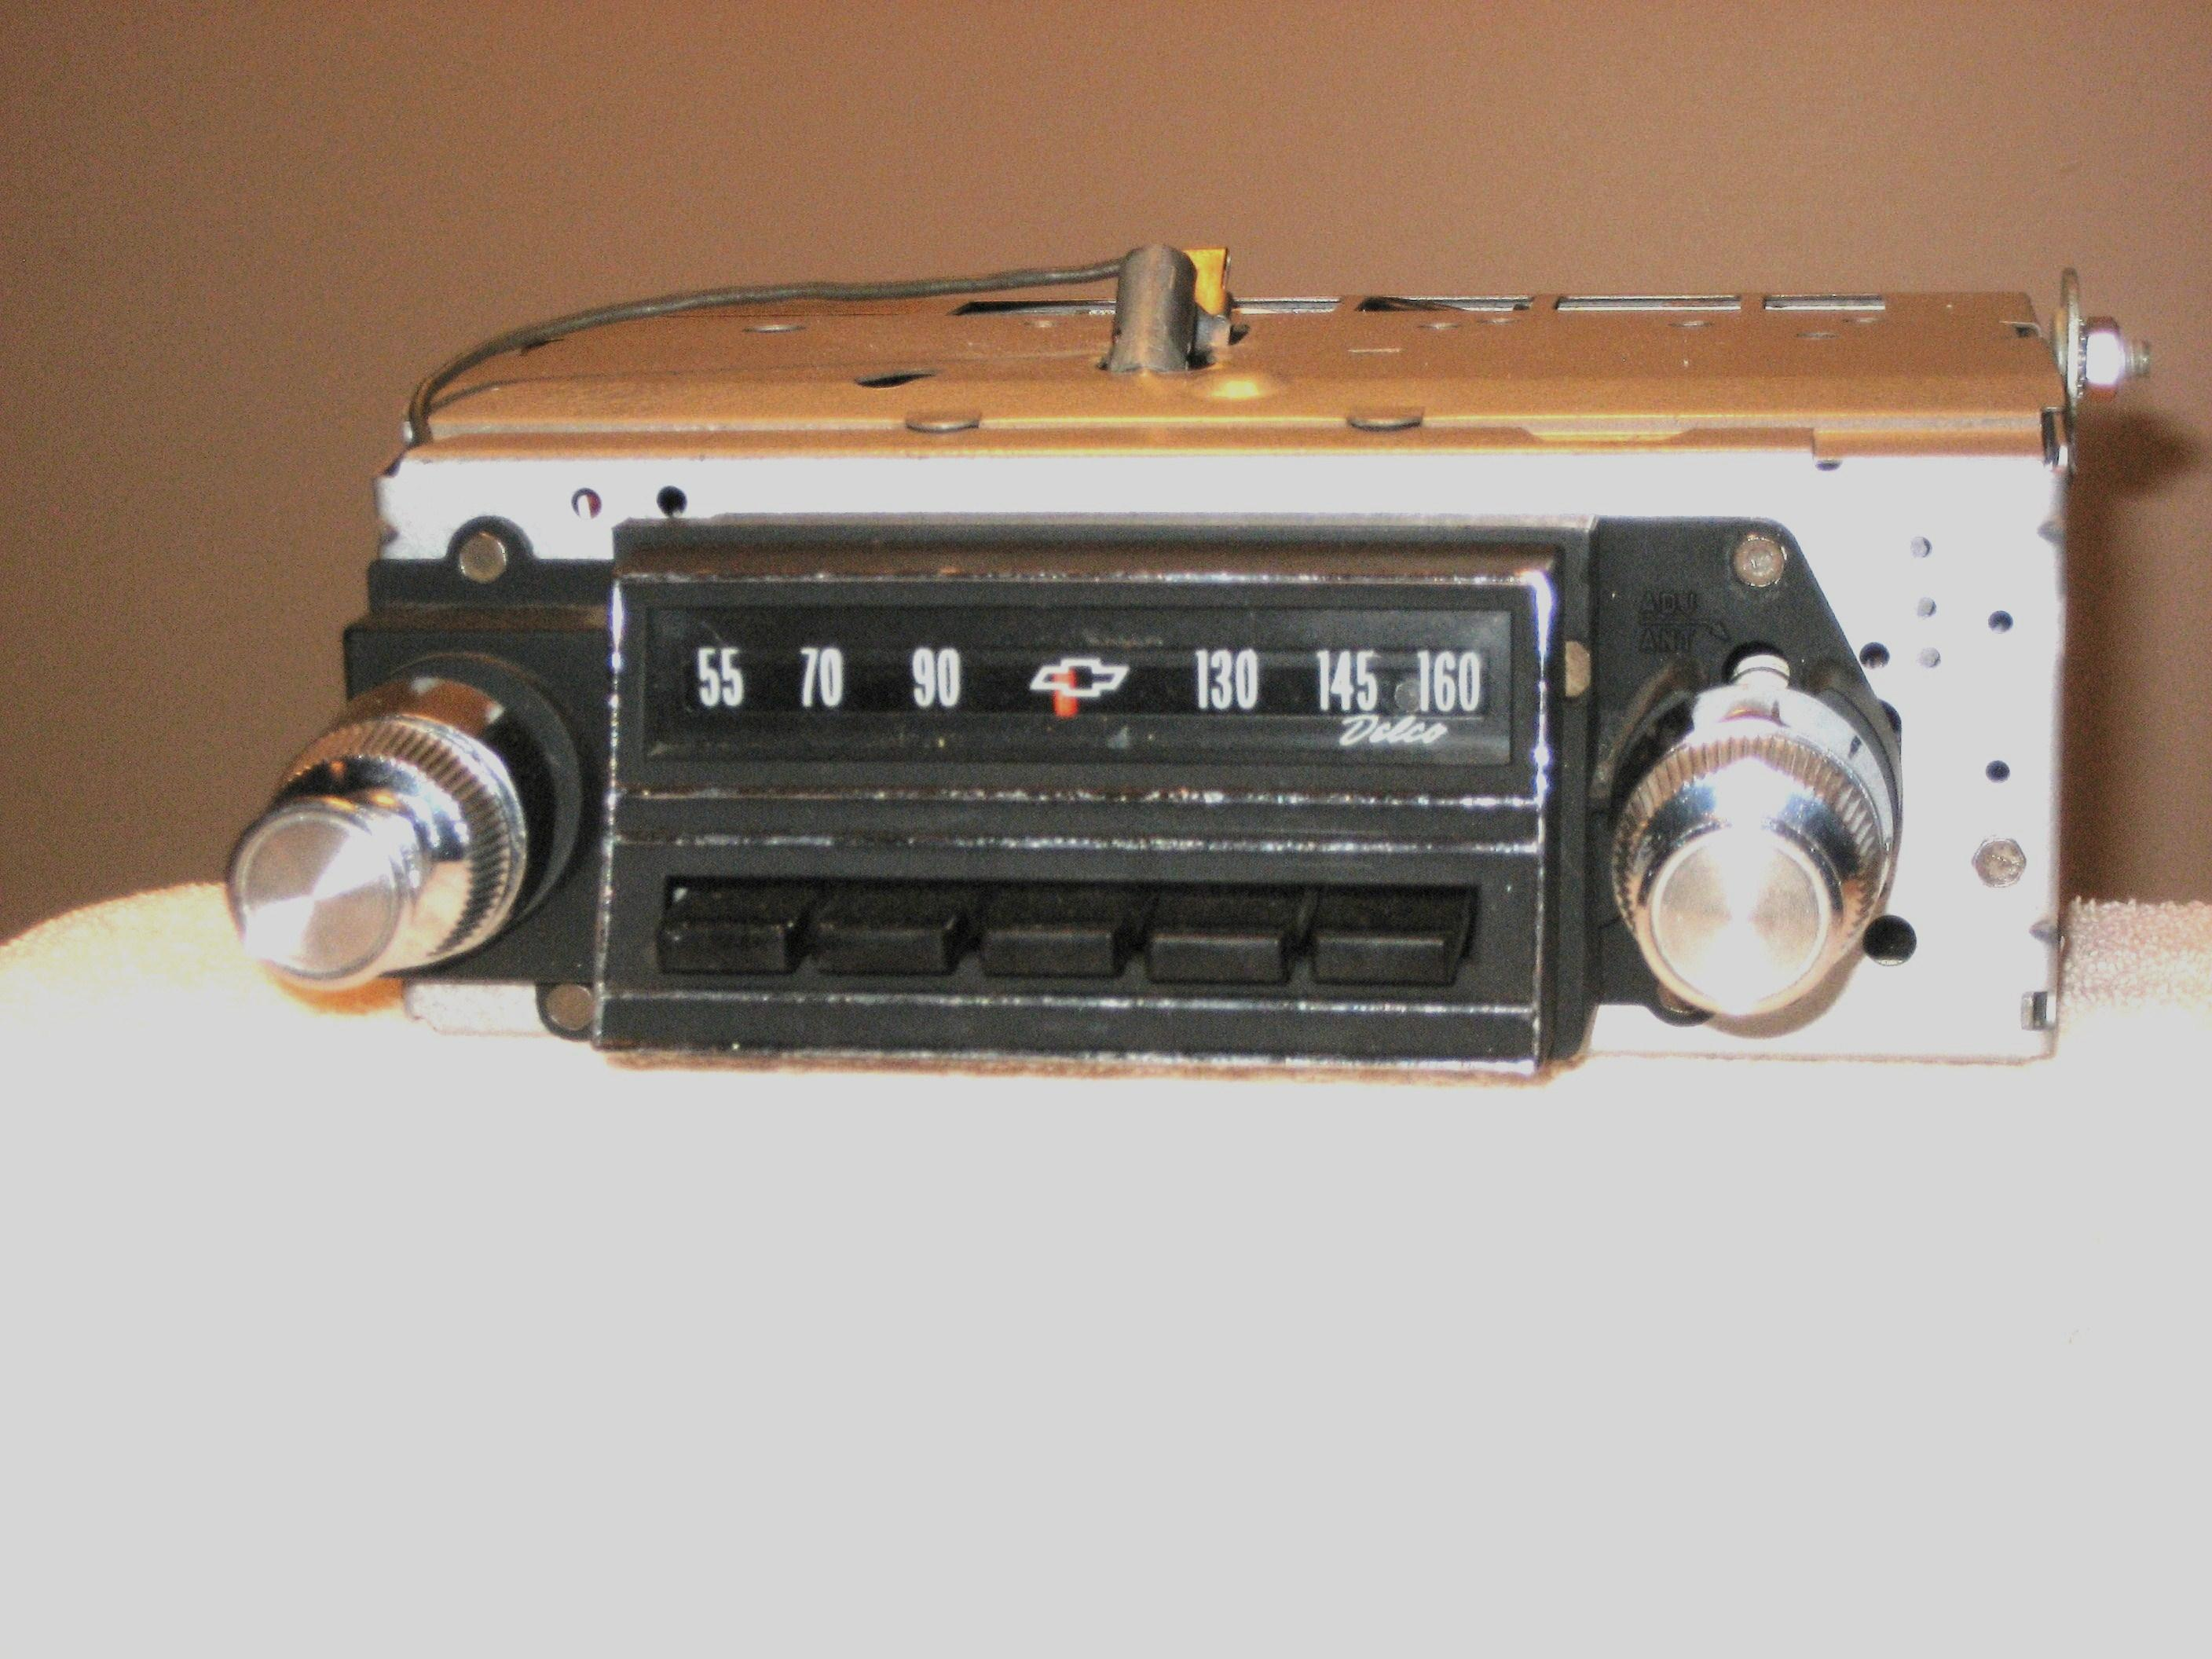 1965 CHEVY AM-FM STEREO RADIO